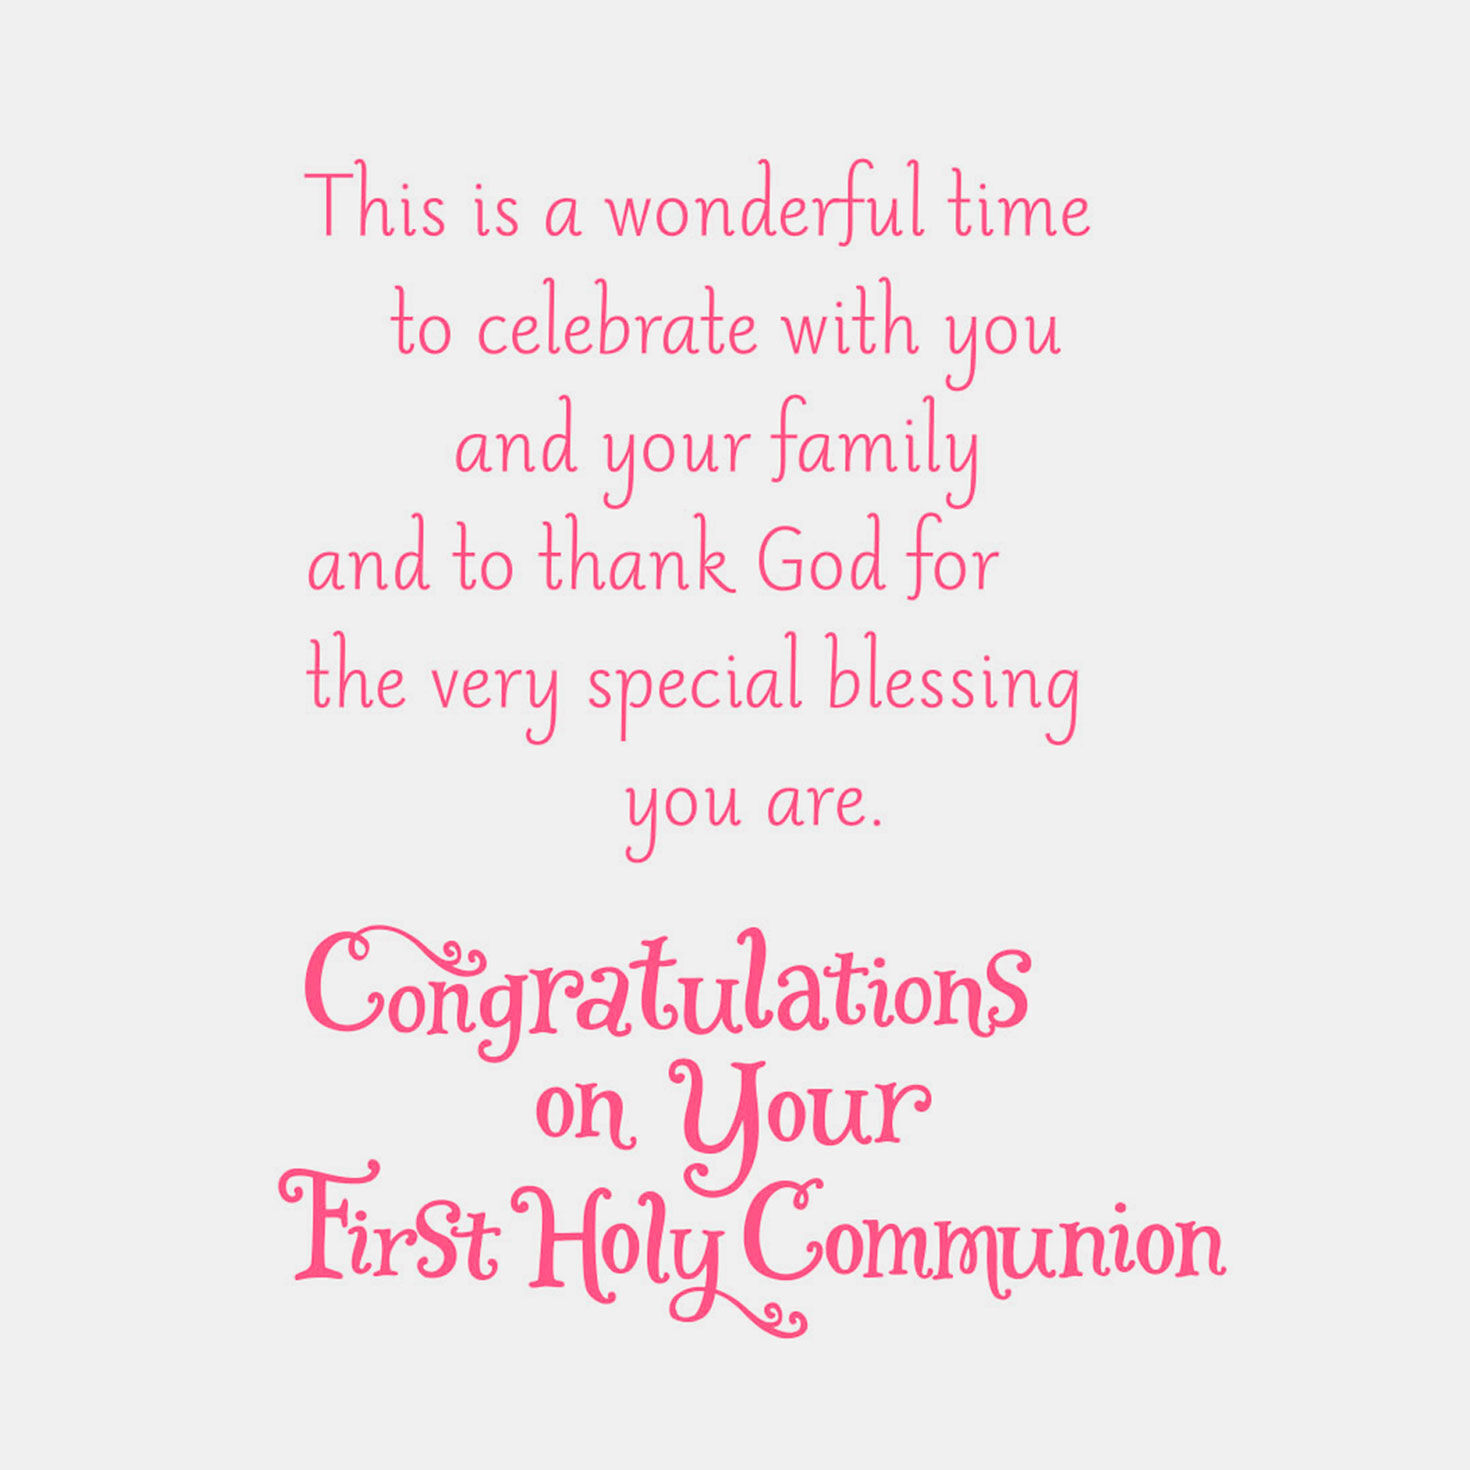 picture relating to First Holy Communion Cards Printable Free named Youngsters at Church Initially Communion Card for Granddaughter